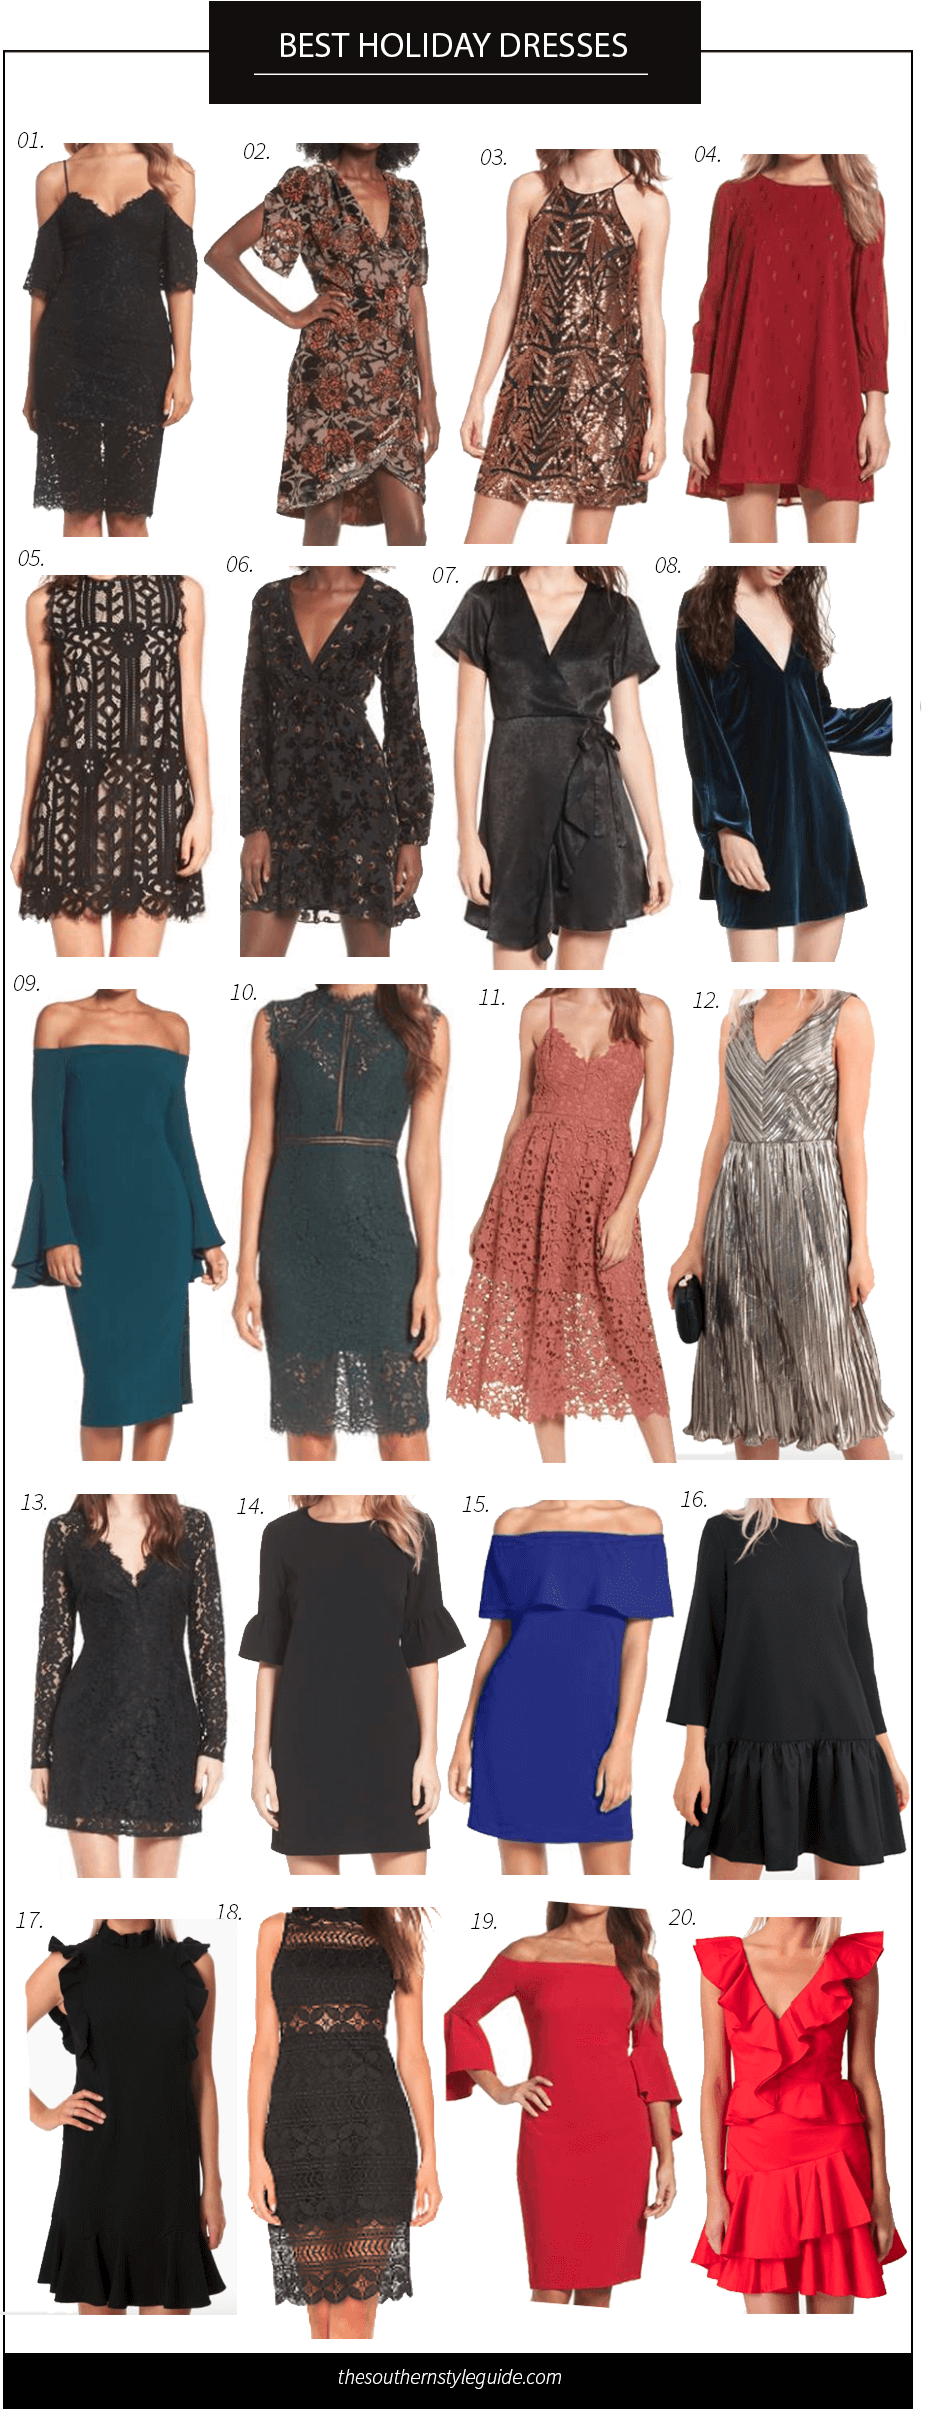 Holiday Dresses, New Years, Christmas, Winter Dresses, Holiday Style